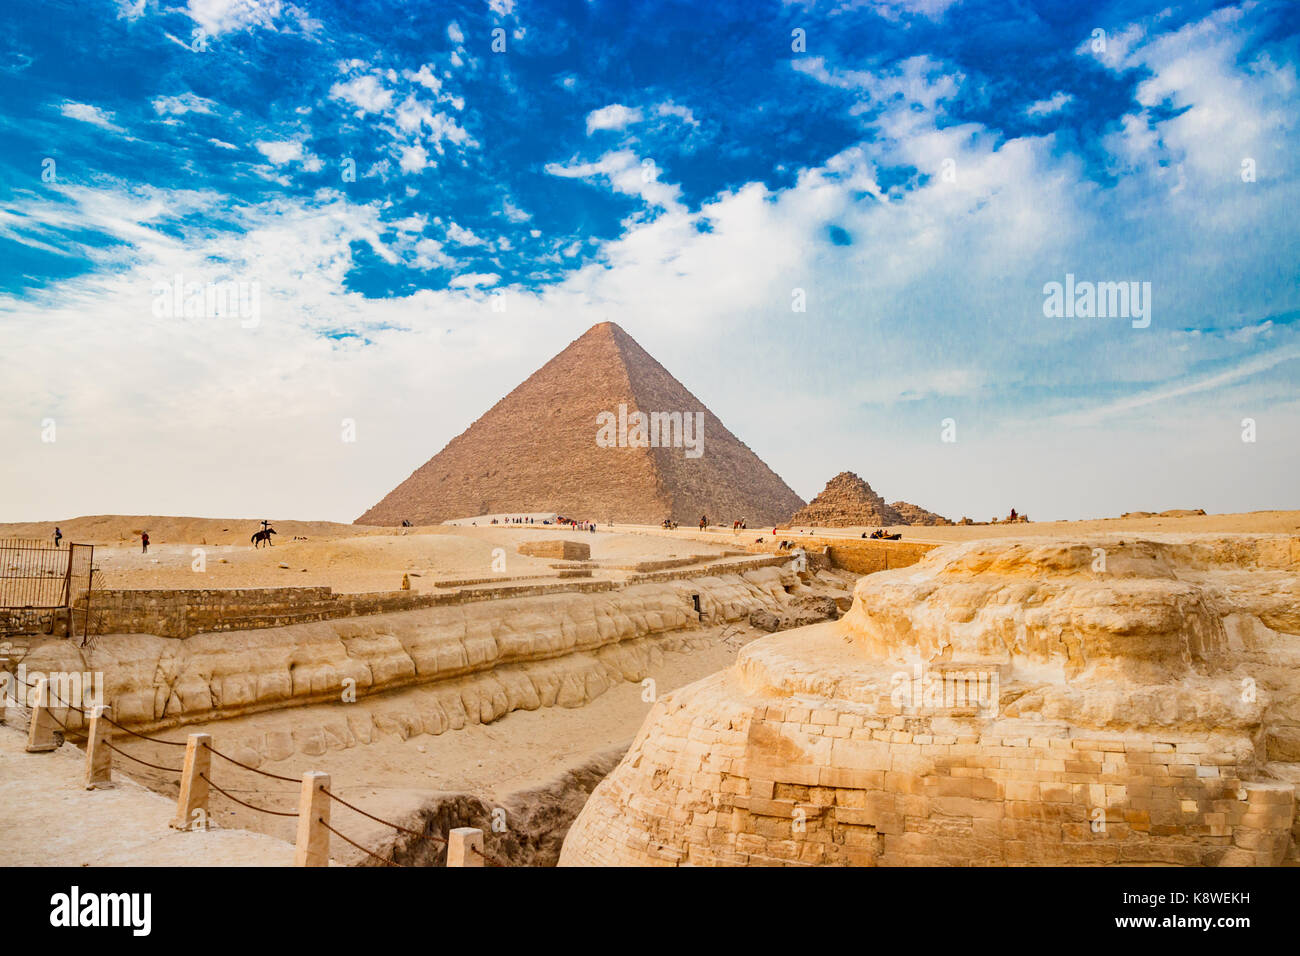 The pyramid in Cairo, Egypt - Stock Image